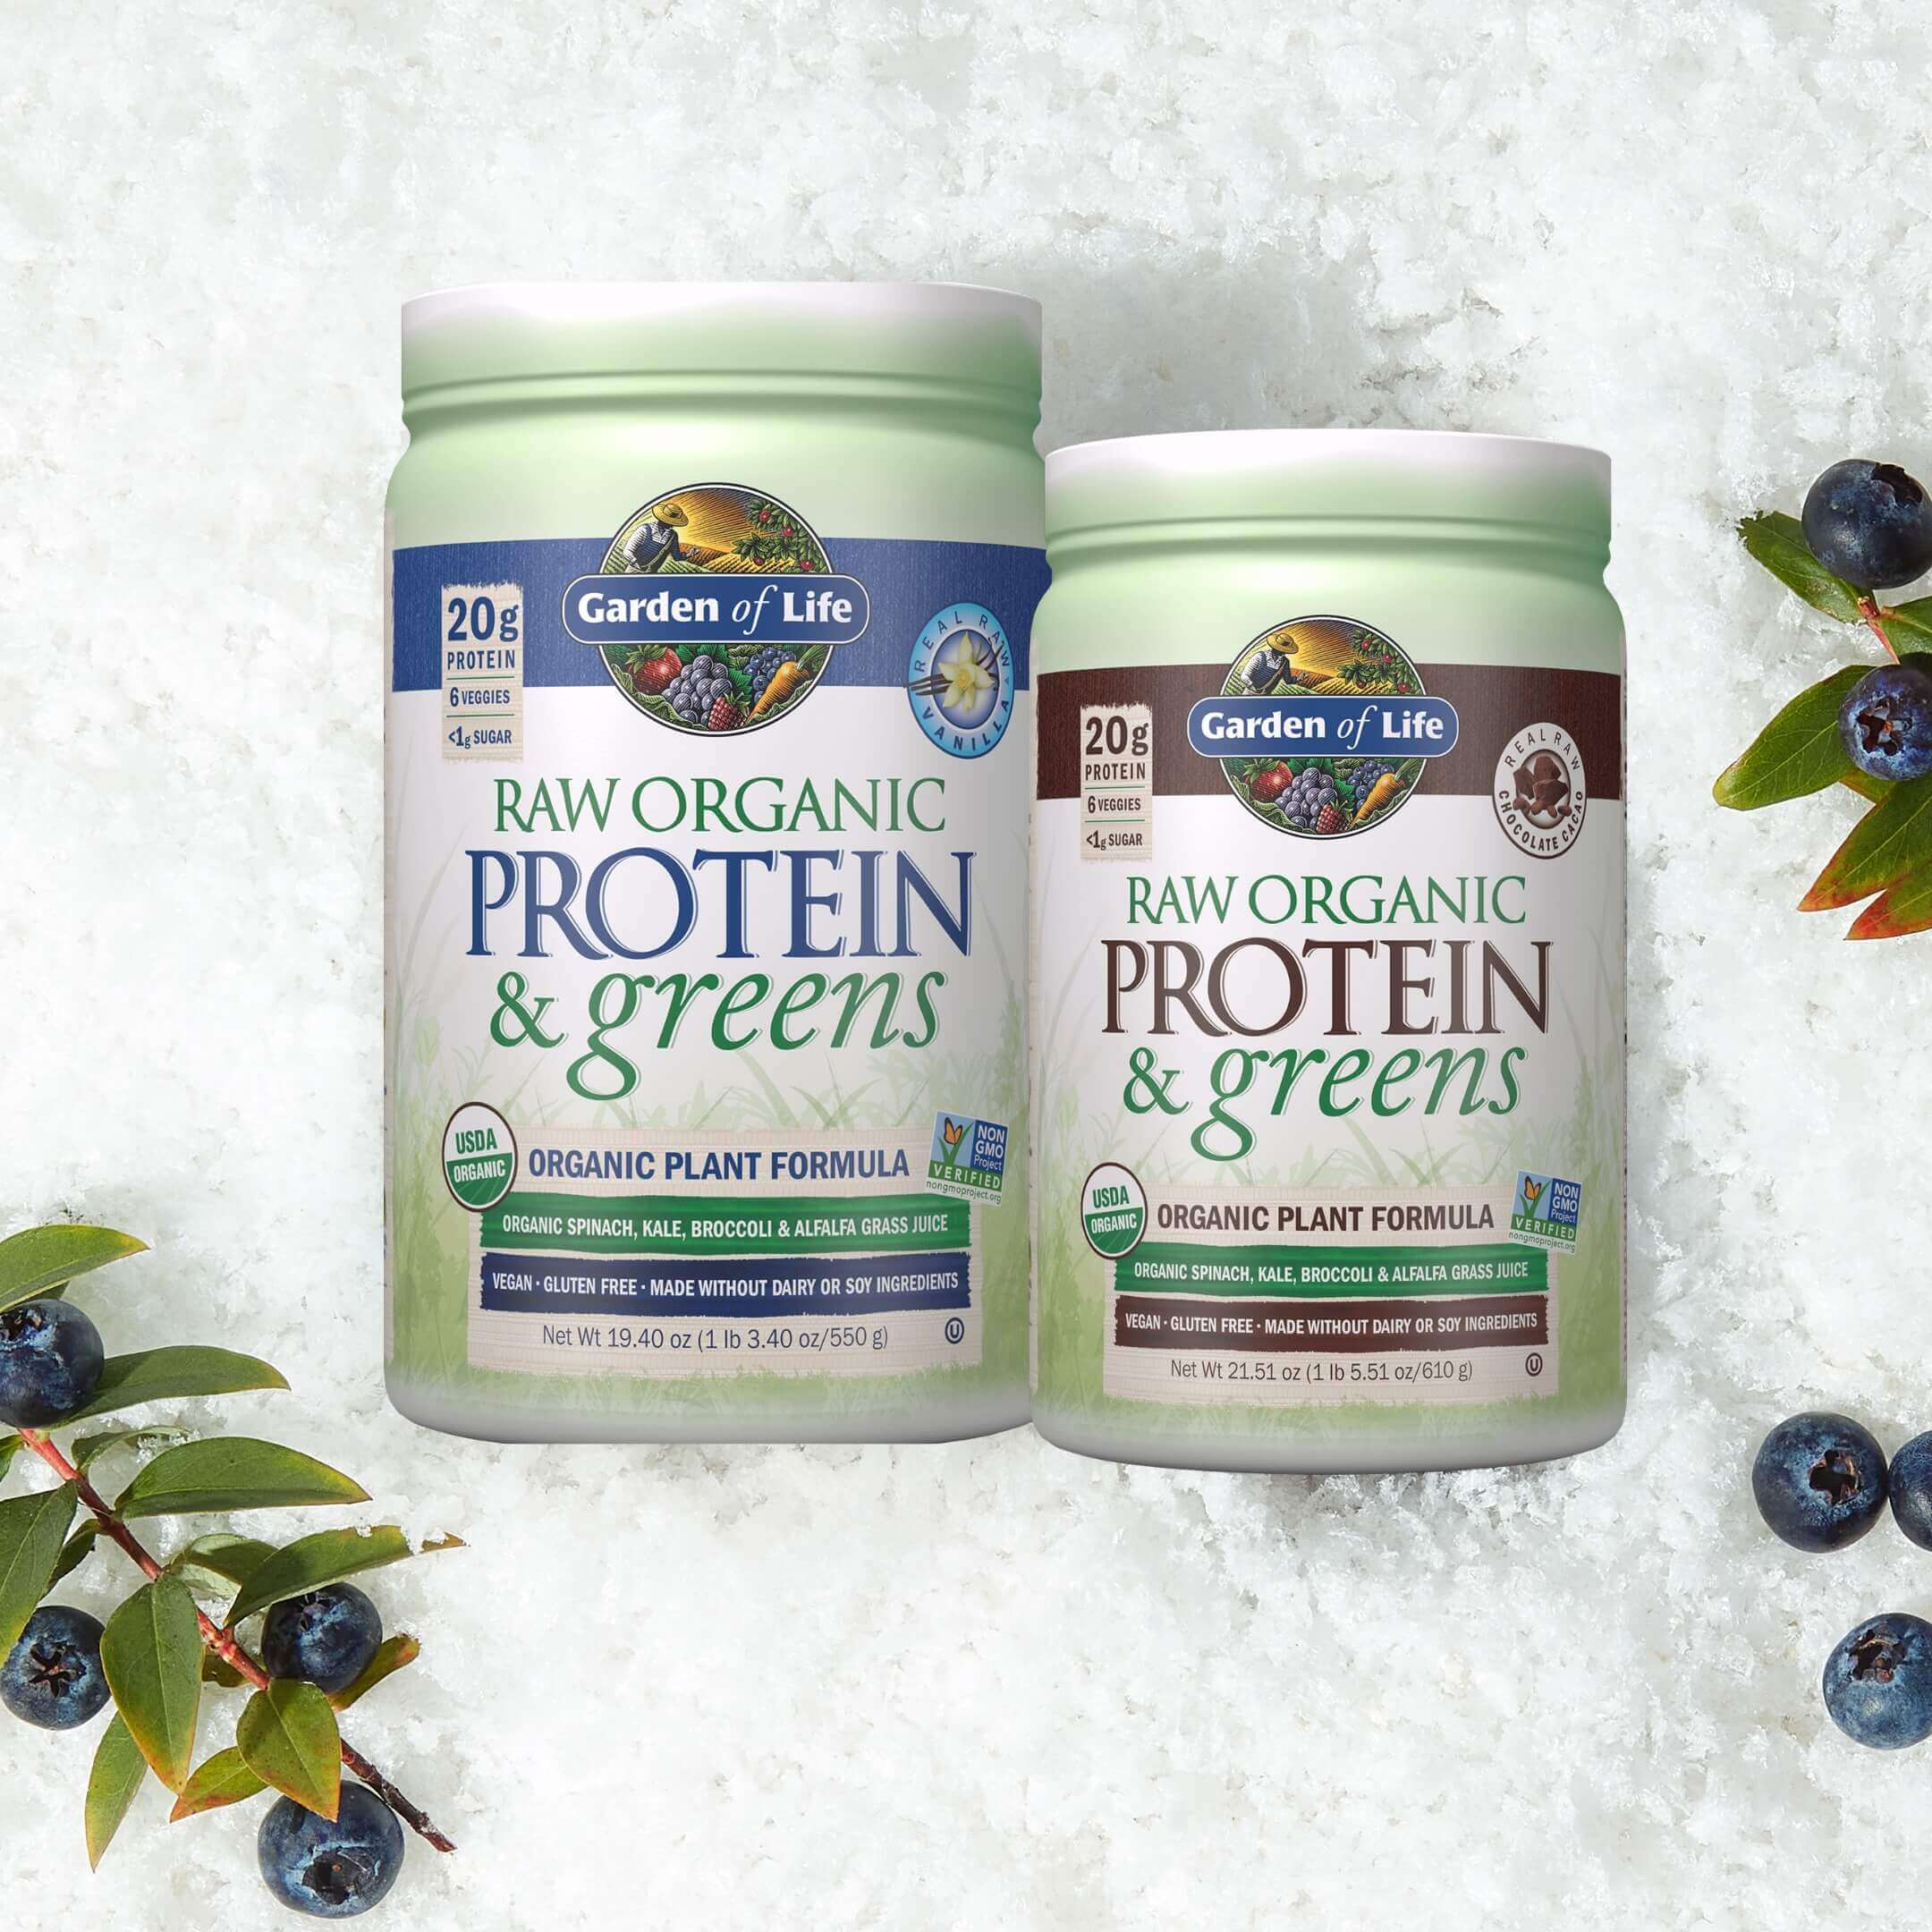 Protein. Whether you're looking to build your body mass or get the best out of plant protein, we've got the protein powder for you.